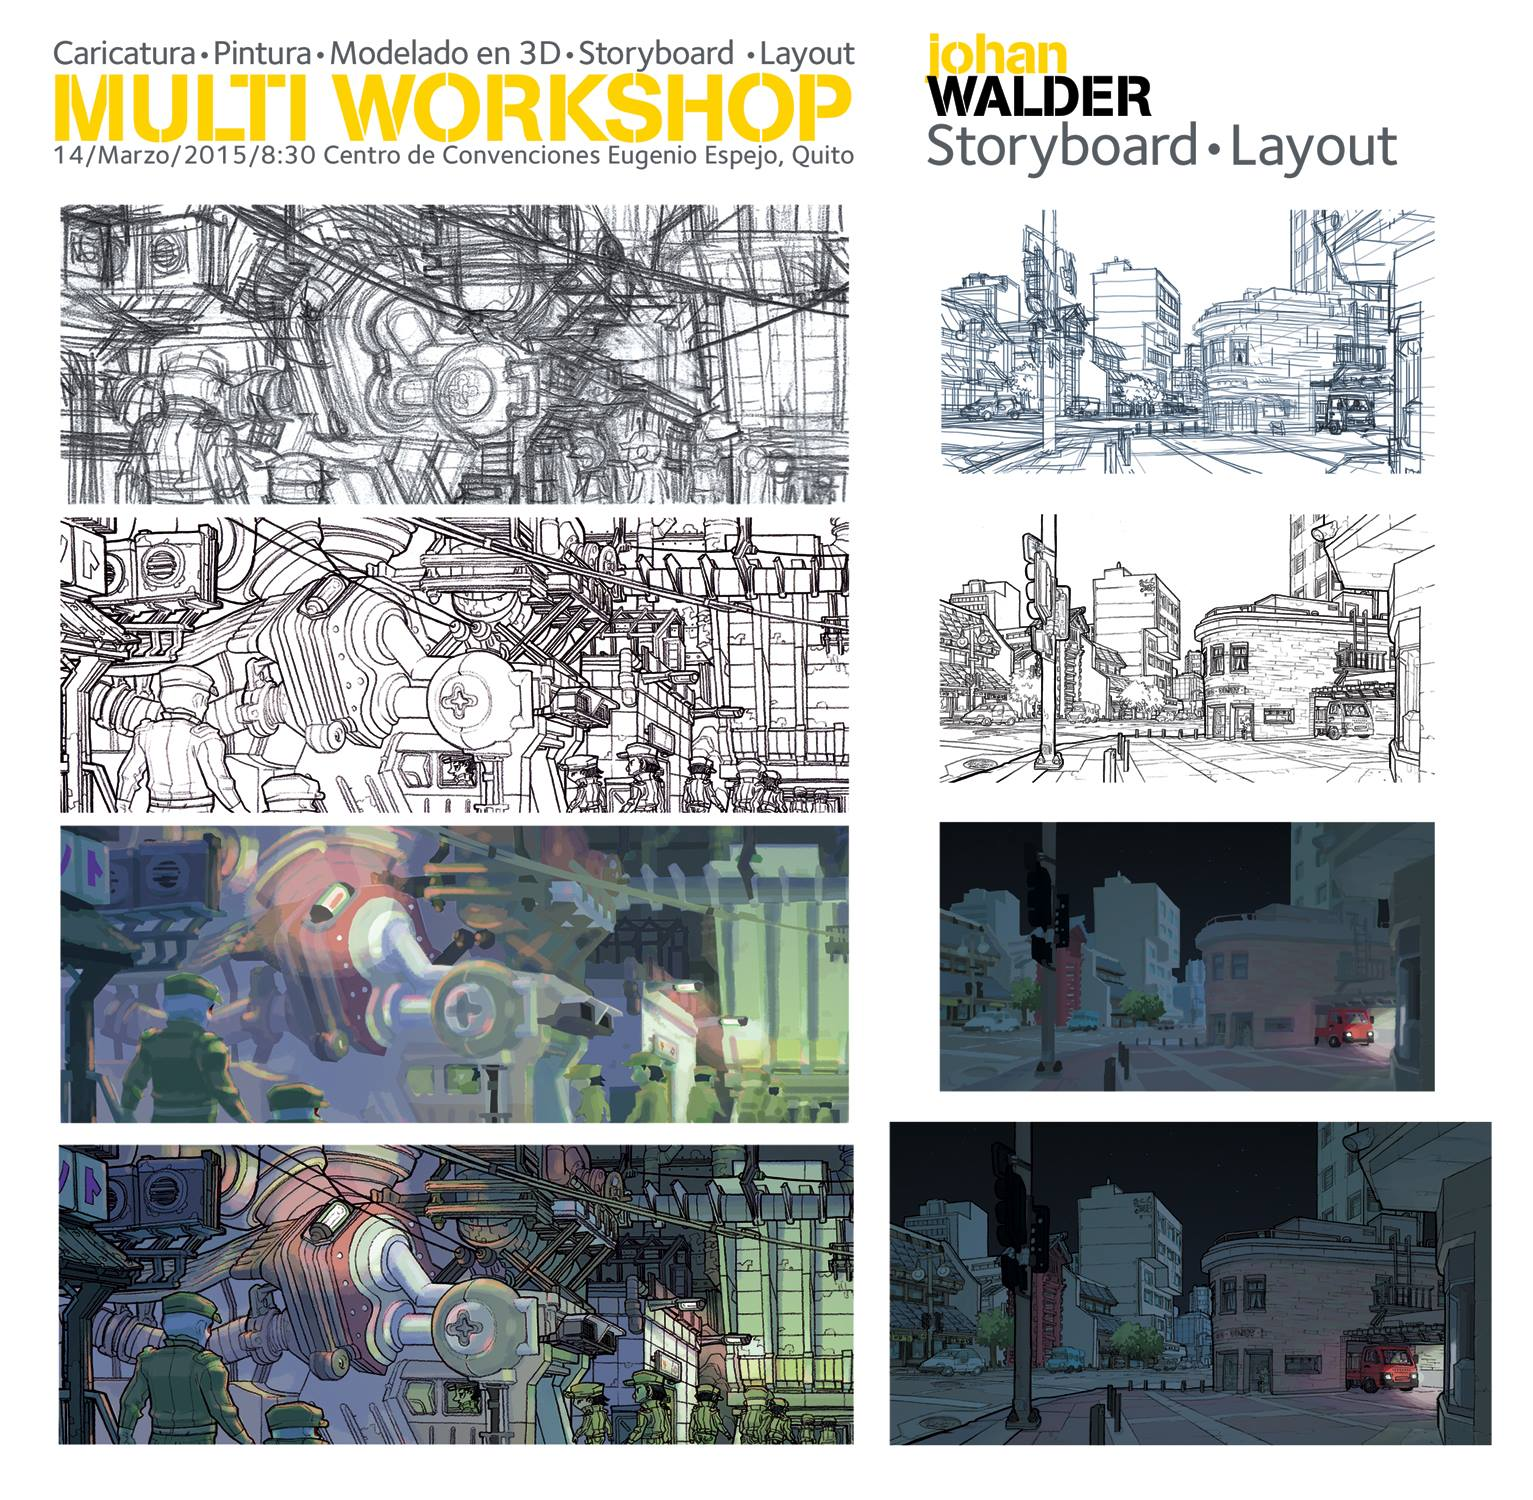 Hi everyone ! I will be giving a masterclass workshop on layout and storyboard